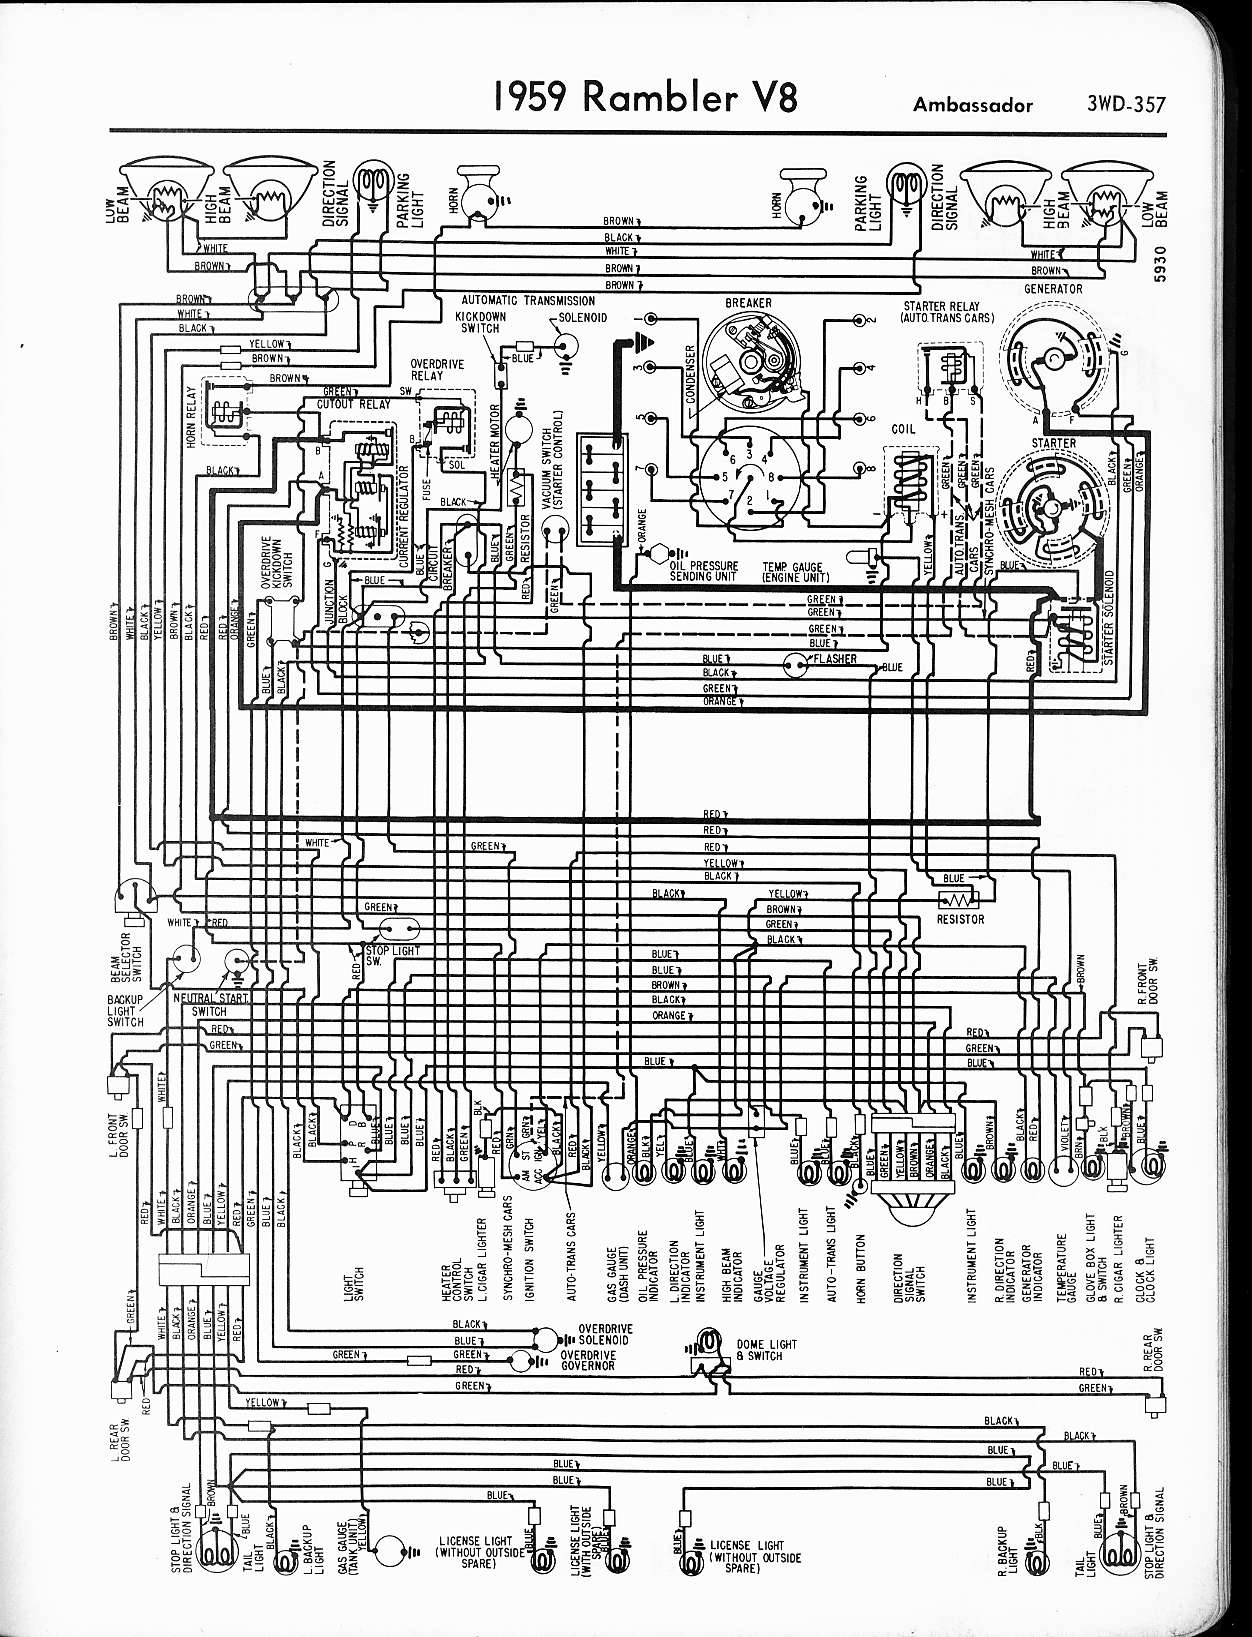 MWire5765 357 rambler wiring diagrams the old car manual project amc rebel wiring diagram at gsmportal.co